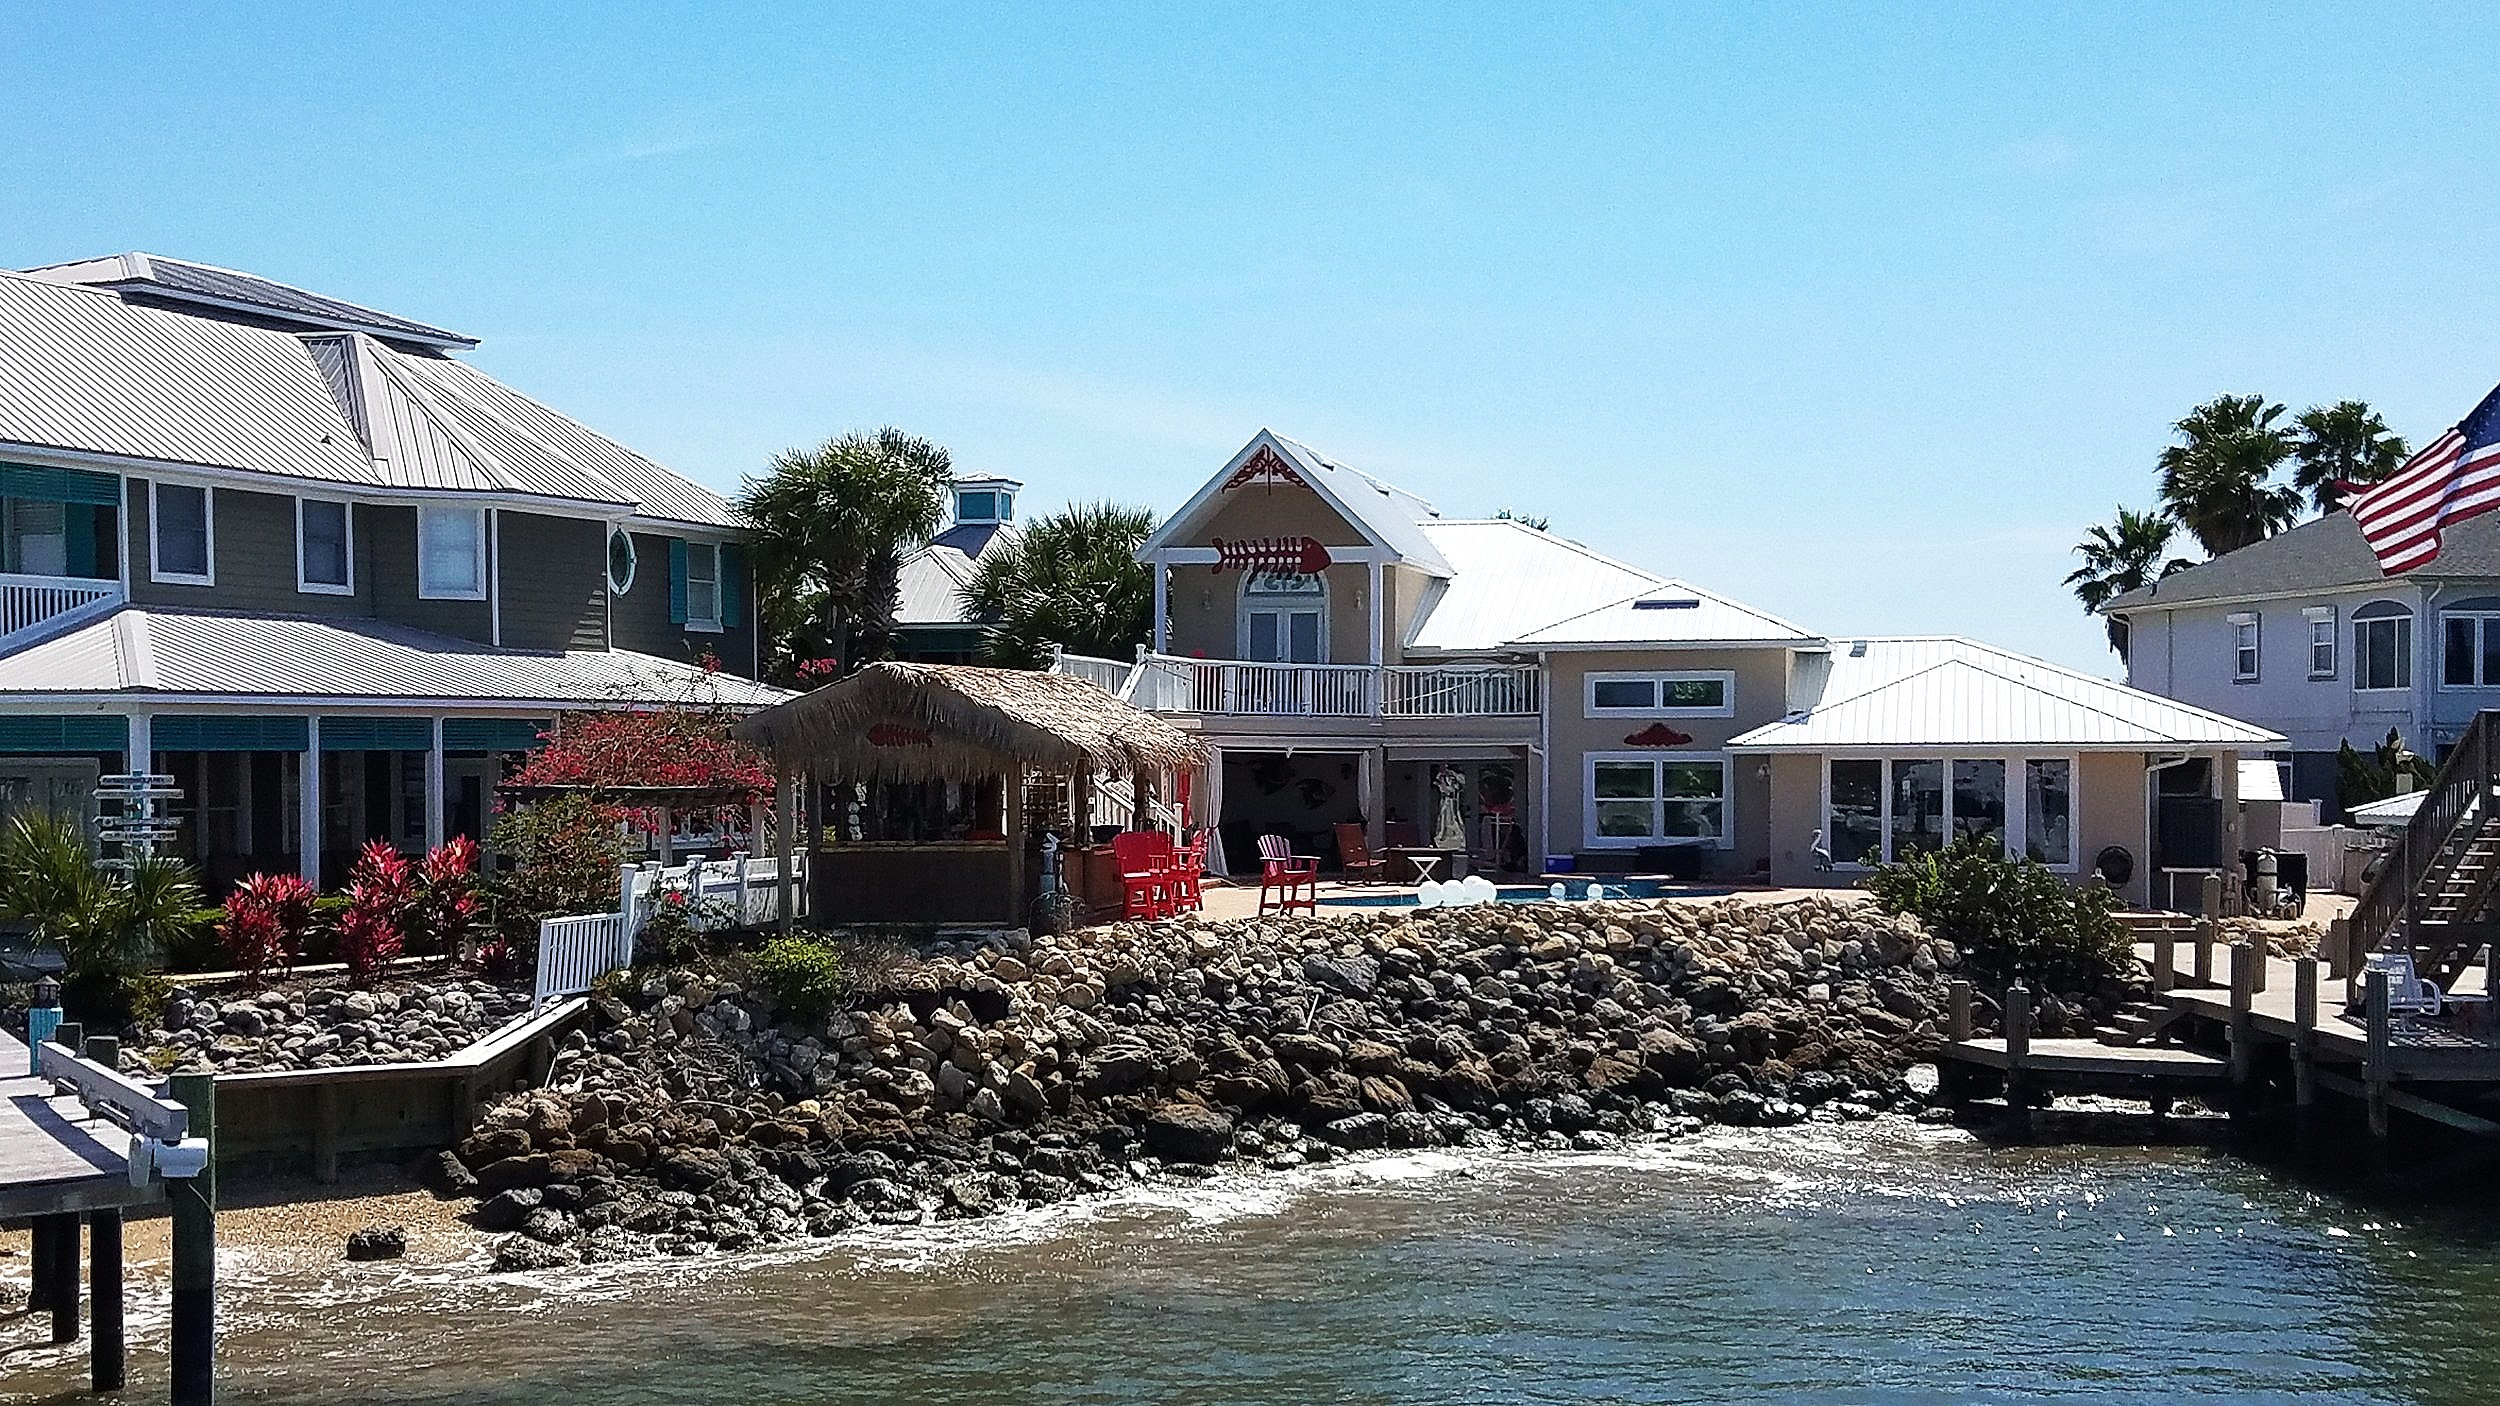 These people have fun! One of many amazing houses along the ICW.